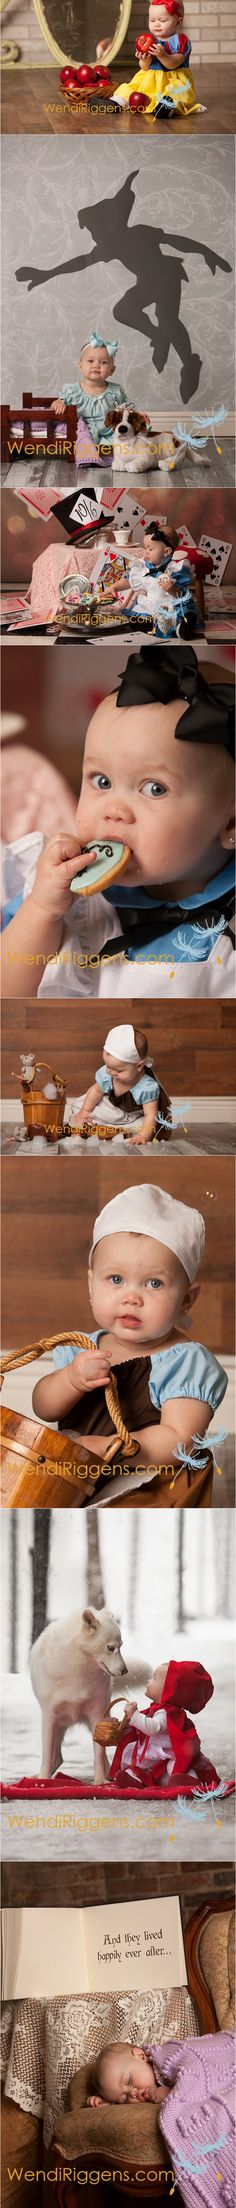 Children's Fairytale Portraits | Evoking You | Oh my goodness! These are just so sweet!!! I LOVE THIS!!!!